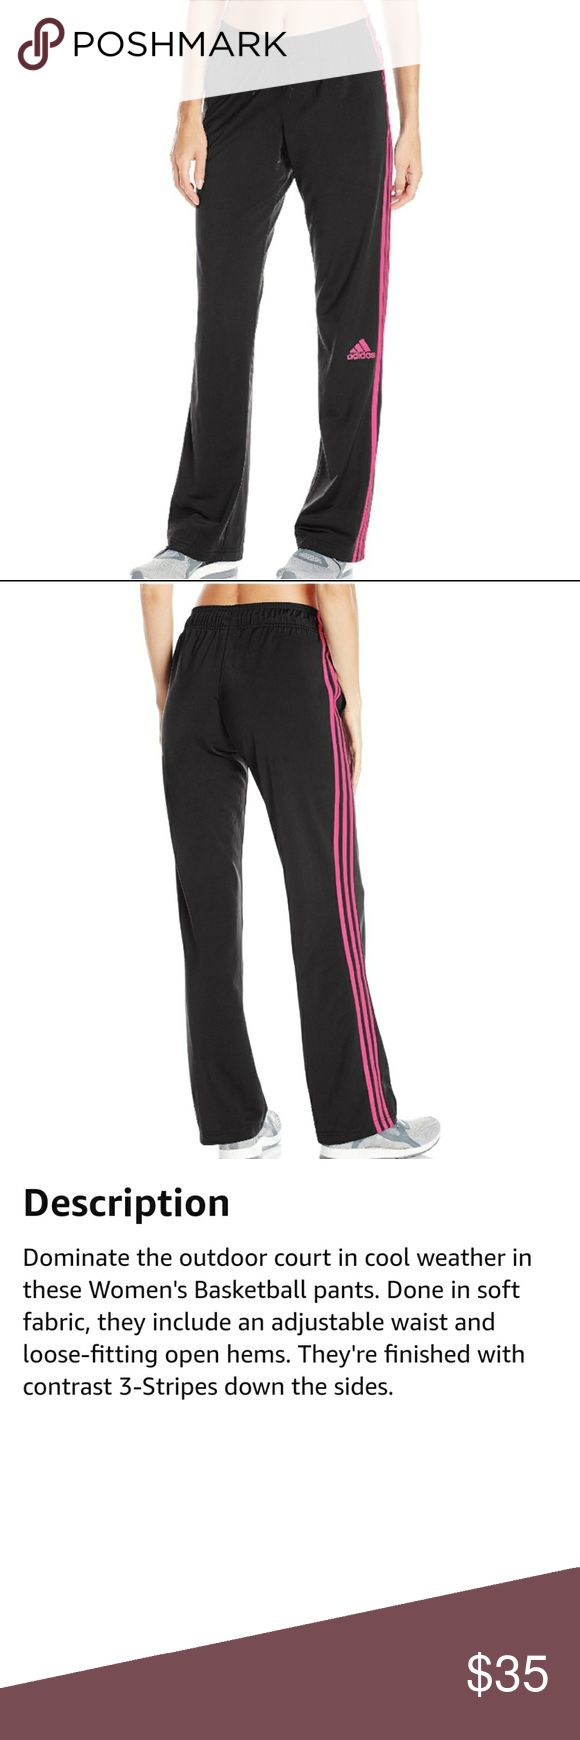 Adidas basketball pants New with tags.   Super cool Adidas basketball pants in black with bright pink stripes.  Featuring adjustable drawstring waist and side pockets.  Super comfy, sporty and chic!  100% polyester.  Smoke free and pet free home. adidas Pants Track Pants & Joggers